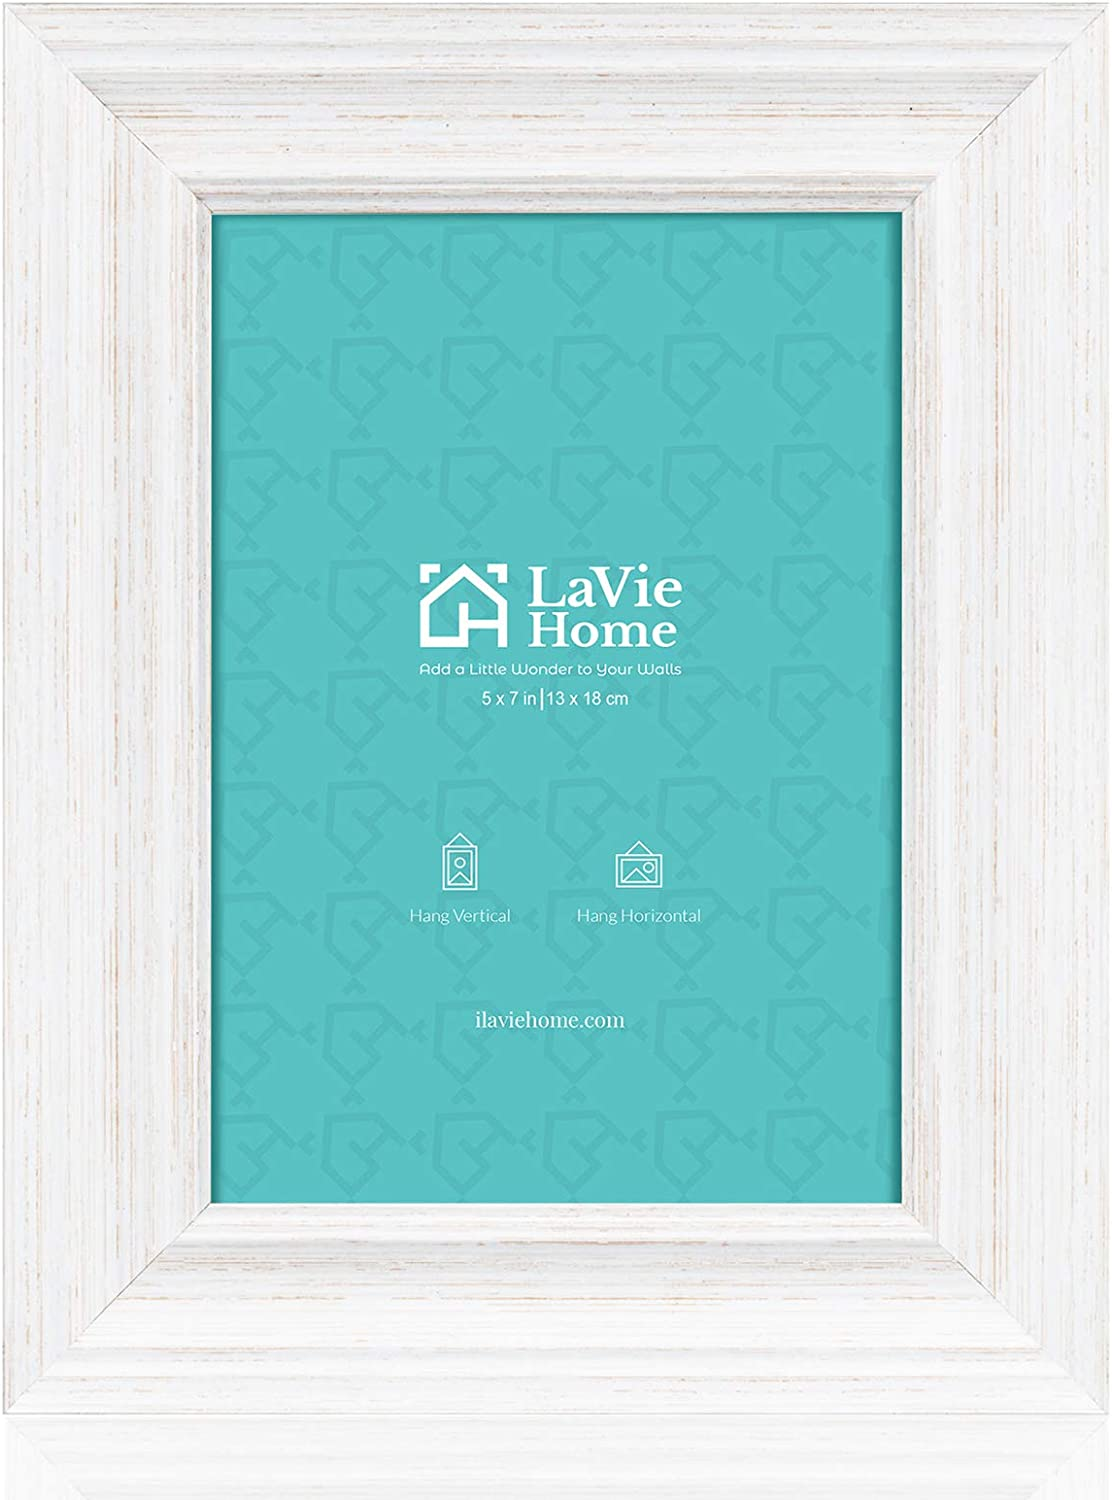 LaVie Home 5x7 Picture Frames (1 Pack, Distressed White) Rustic Photo Frame Set with High Definition Glass for Wall Mount & Table Top Display